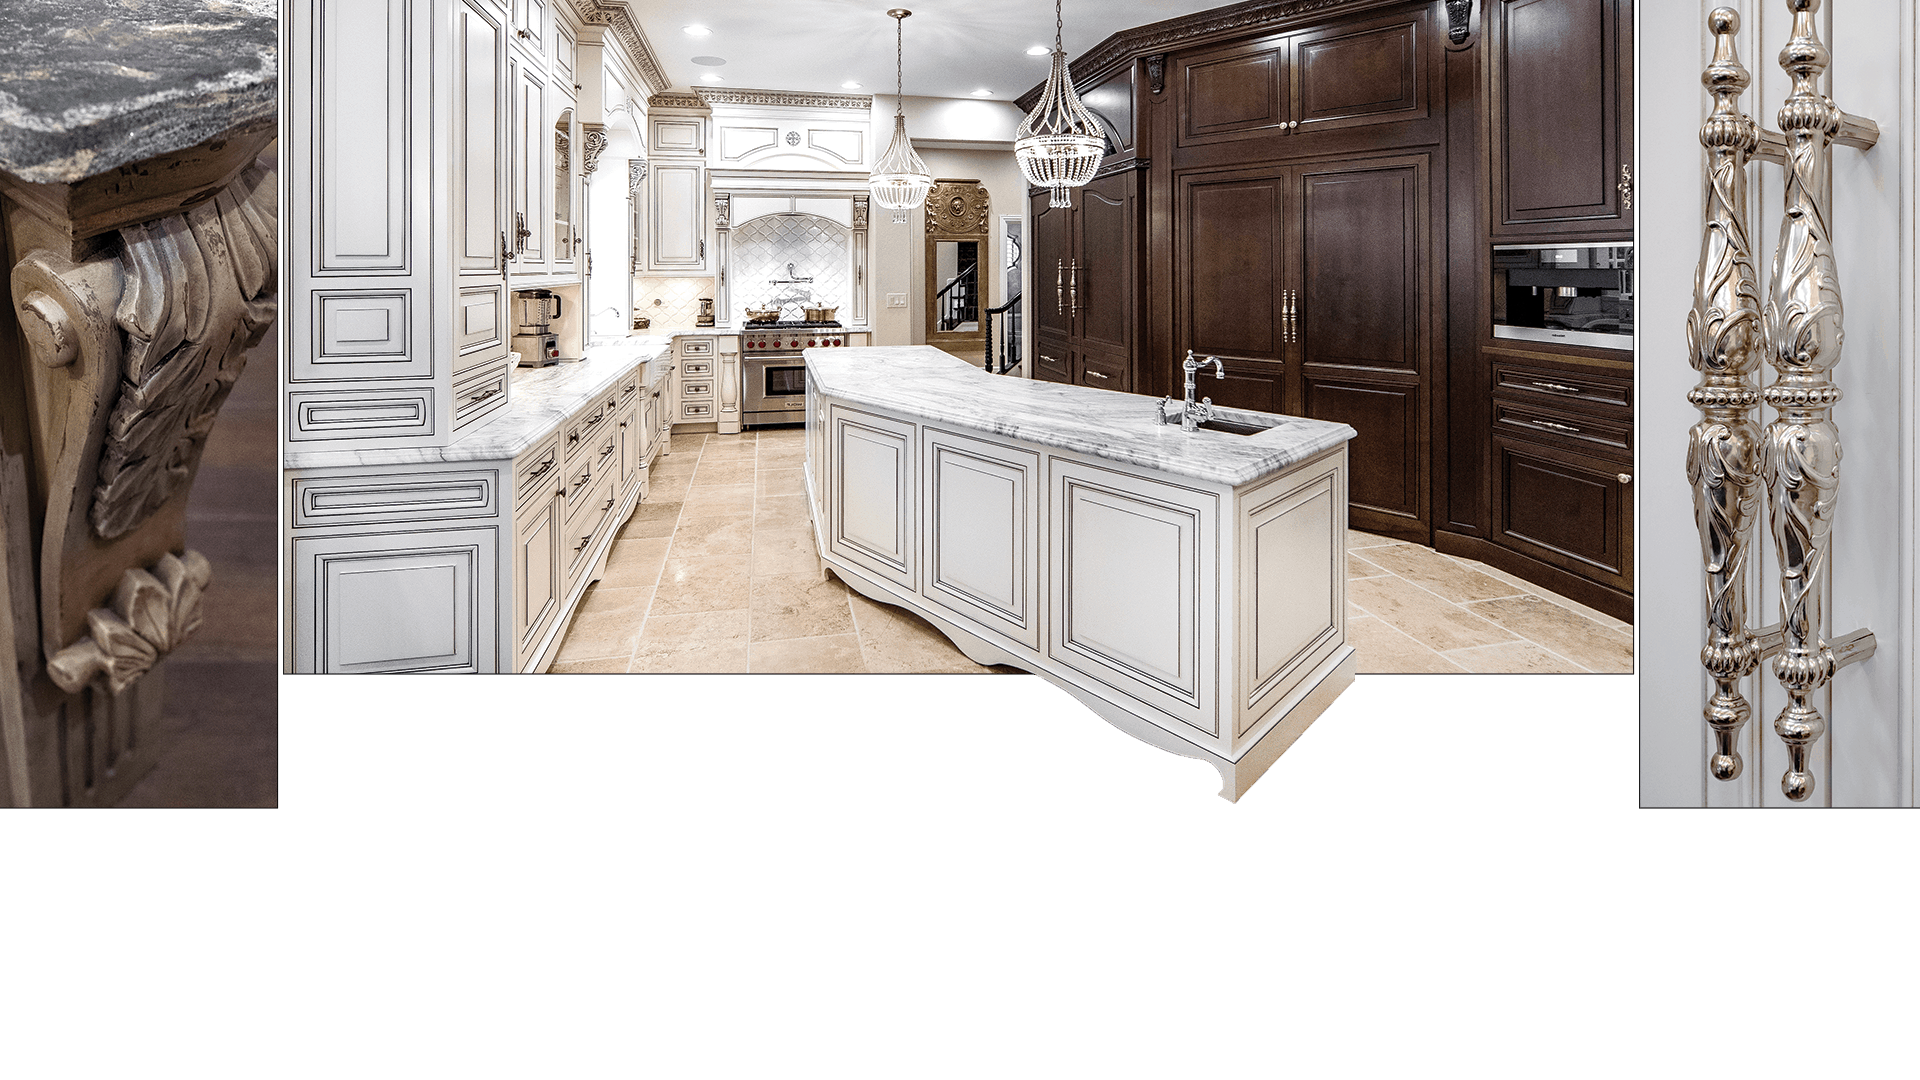 Chicago Luxury Interior Design Firm - Linly Designs in ...